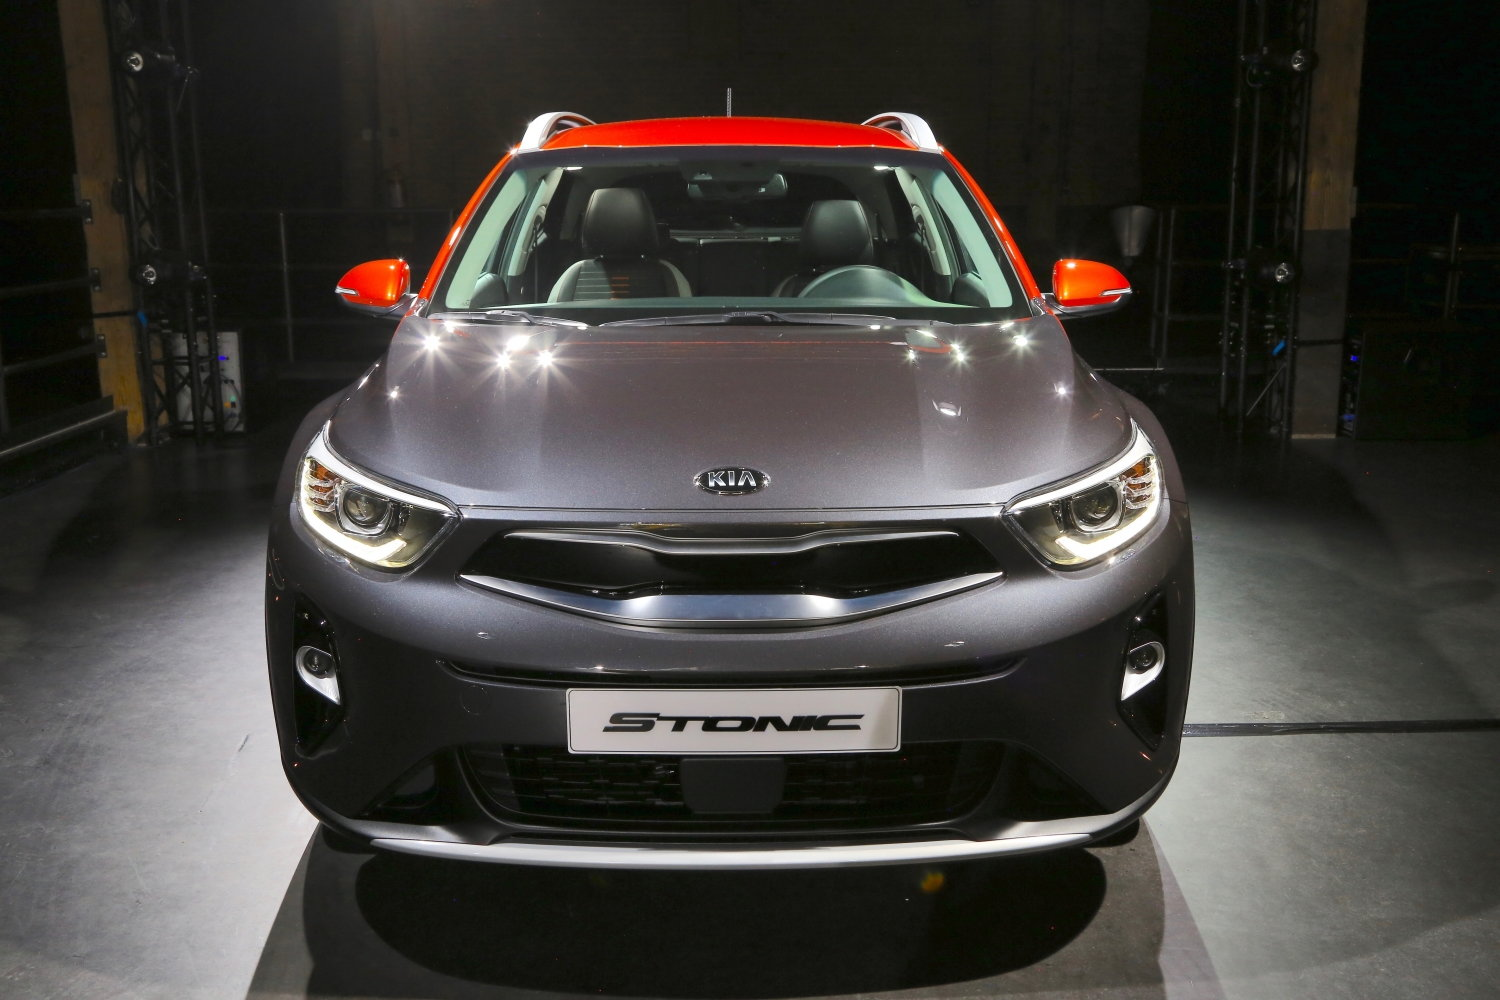 2018 Kia Stonic: Preview, Pricing, Release Date